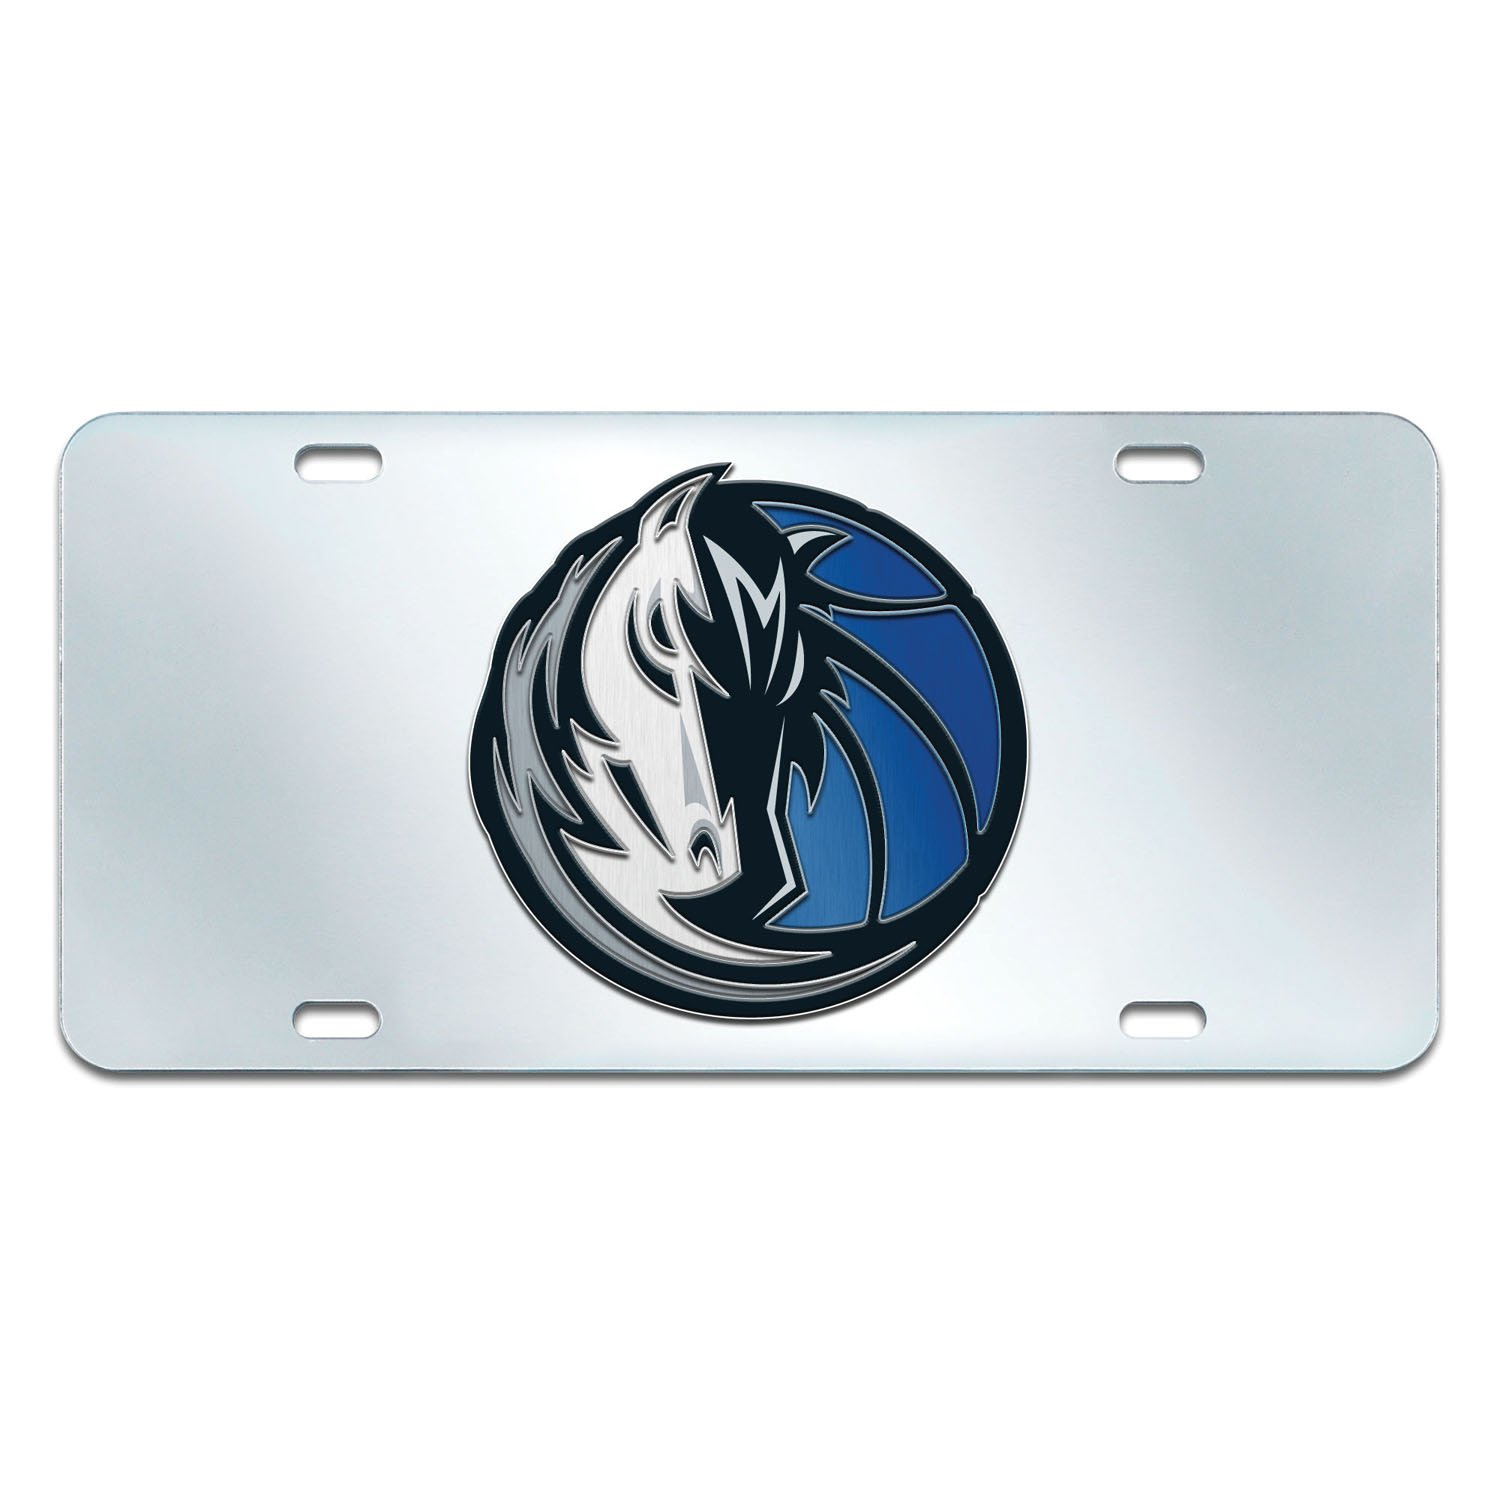 Fanmats NBA Dallas Mavericks License Plate-Inlaid 6x12